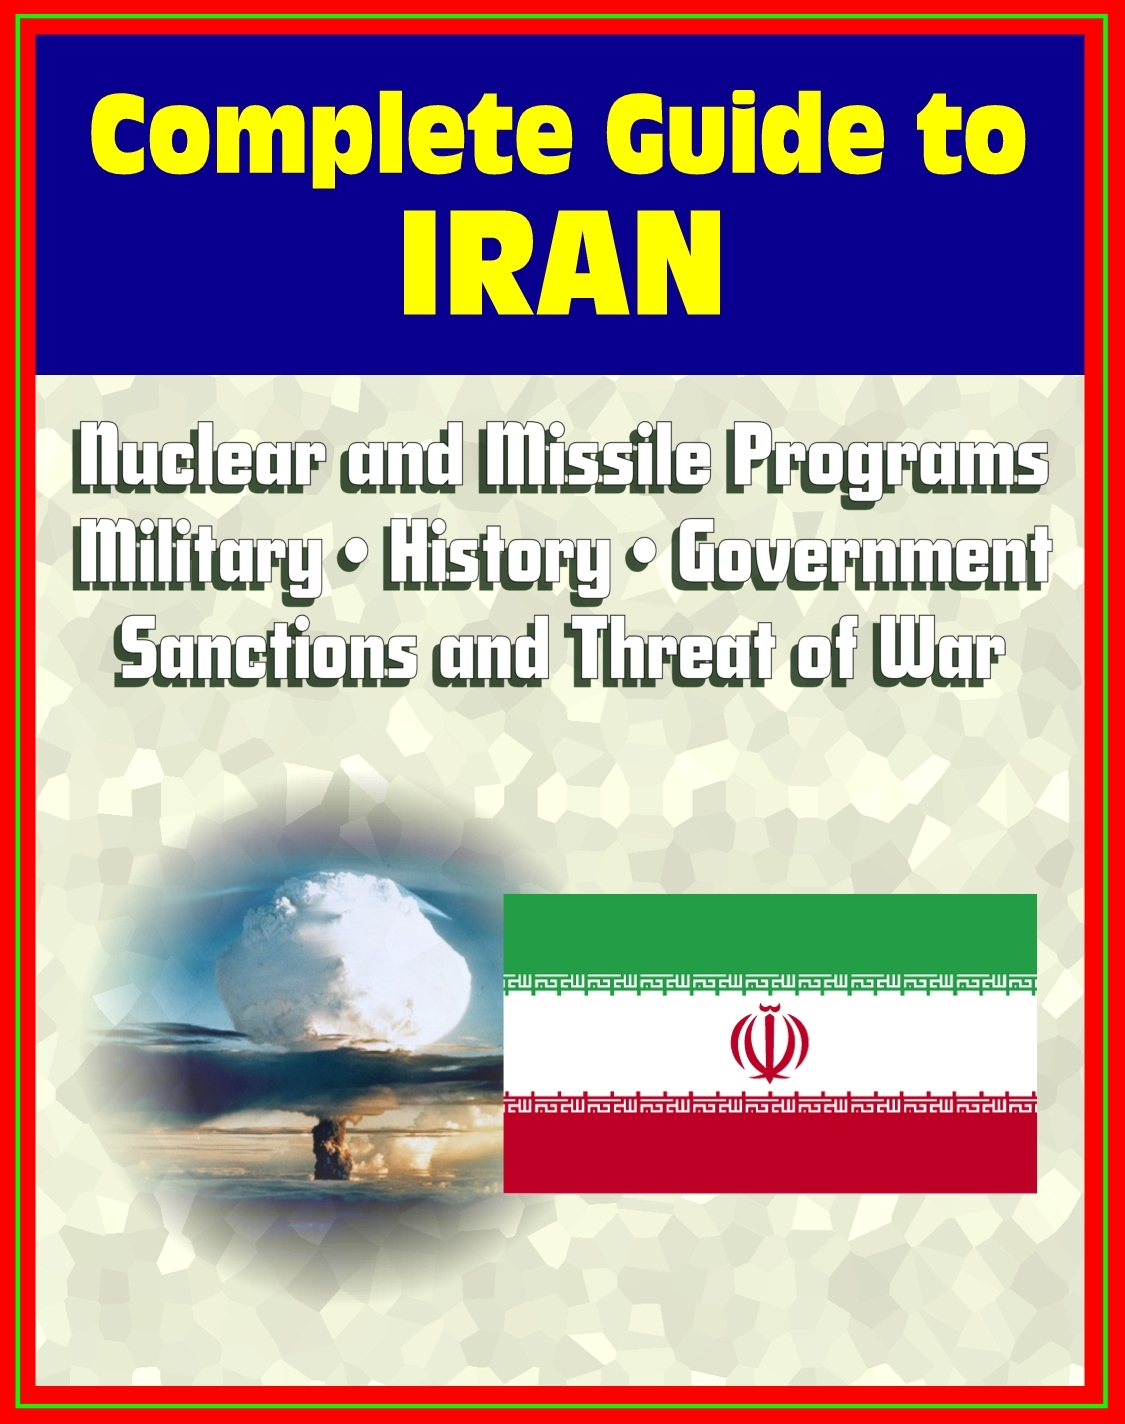 2012 Complete Guide to Iran: Authoritative Coverage of Iranian Nuclear and Missile Programs, Sanctions and Threat of War, Regime, Military, Human Rights, Terrorism, History, Economy, Oil Industry By: Progressive Management